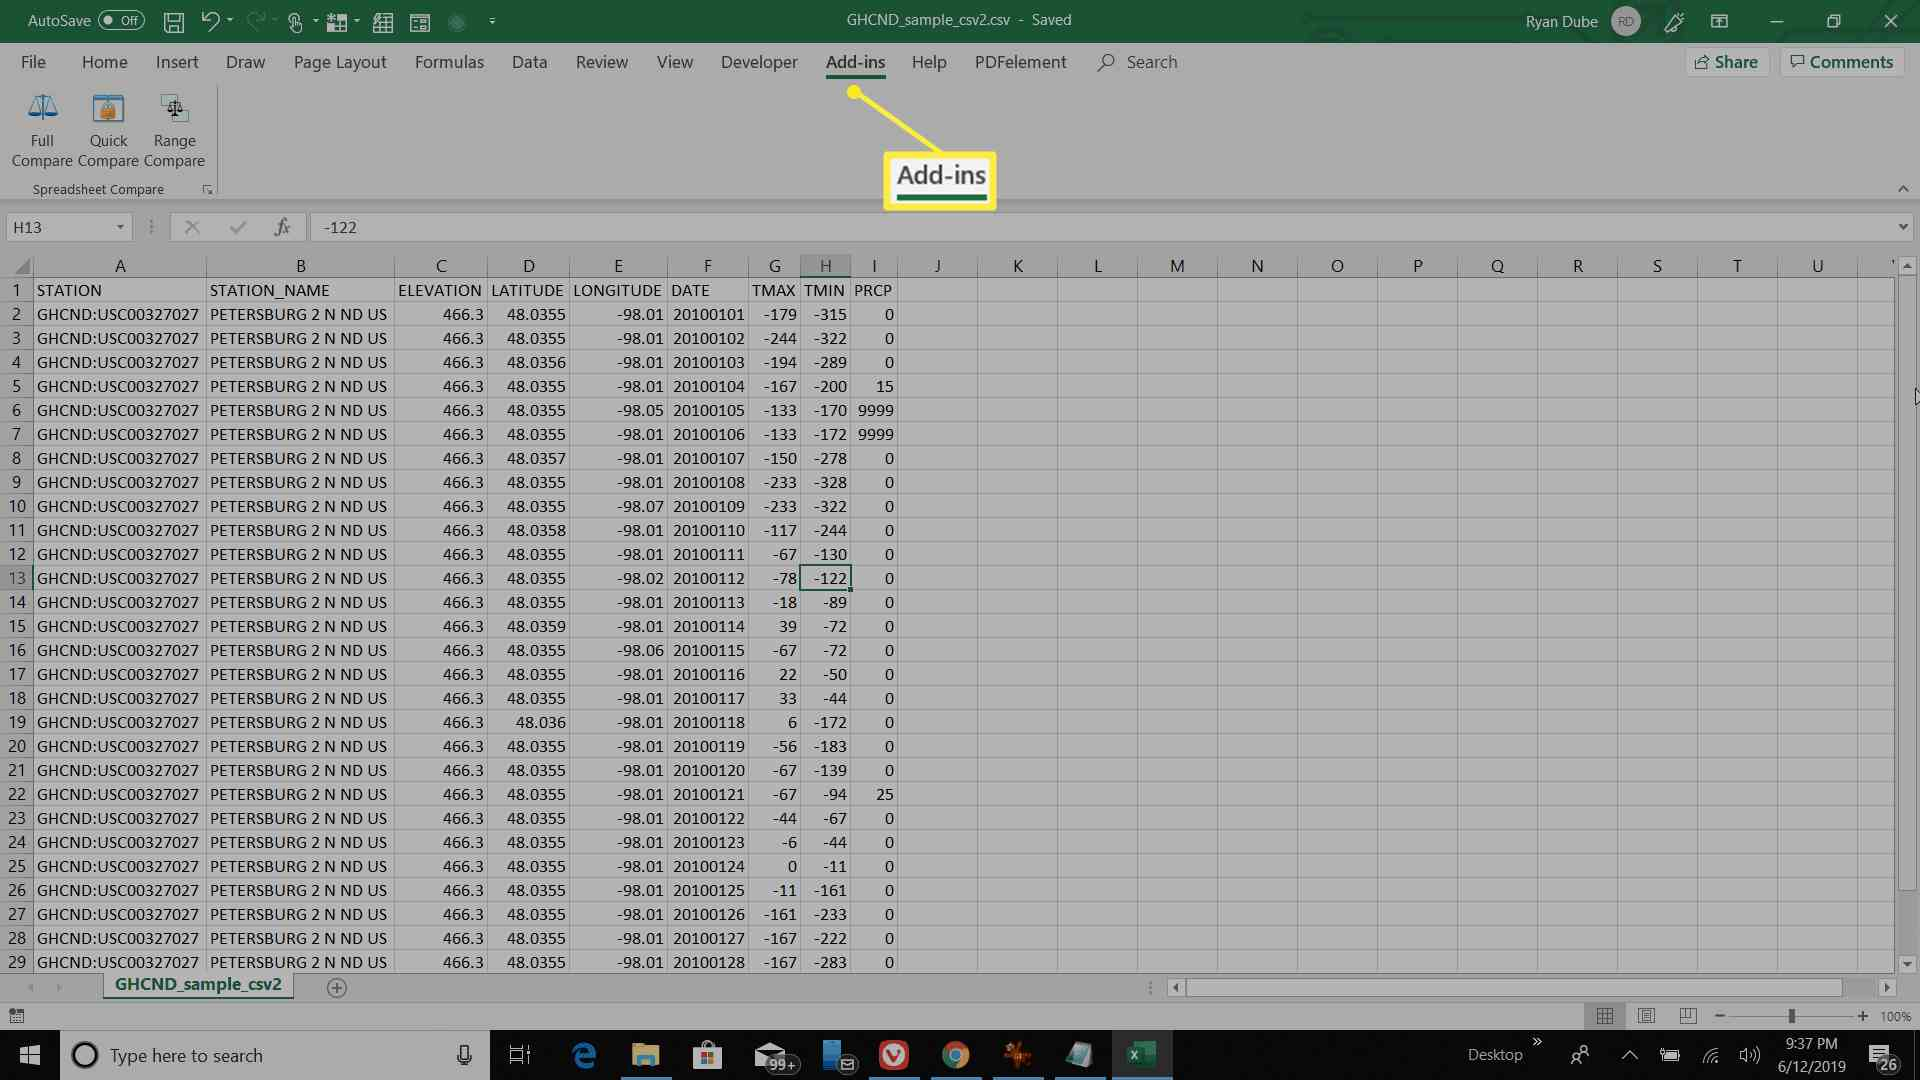 Excel with Add-ins tab highlighted